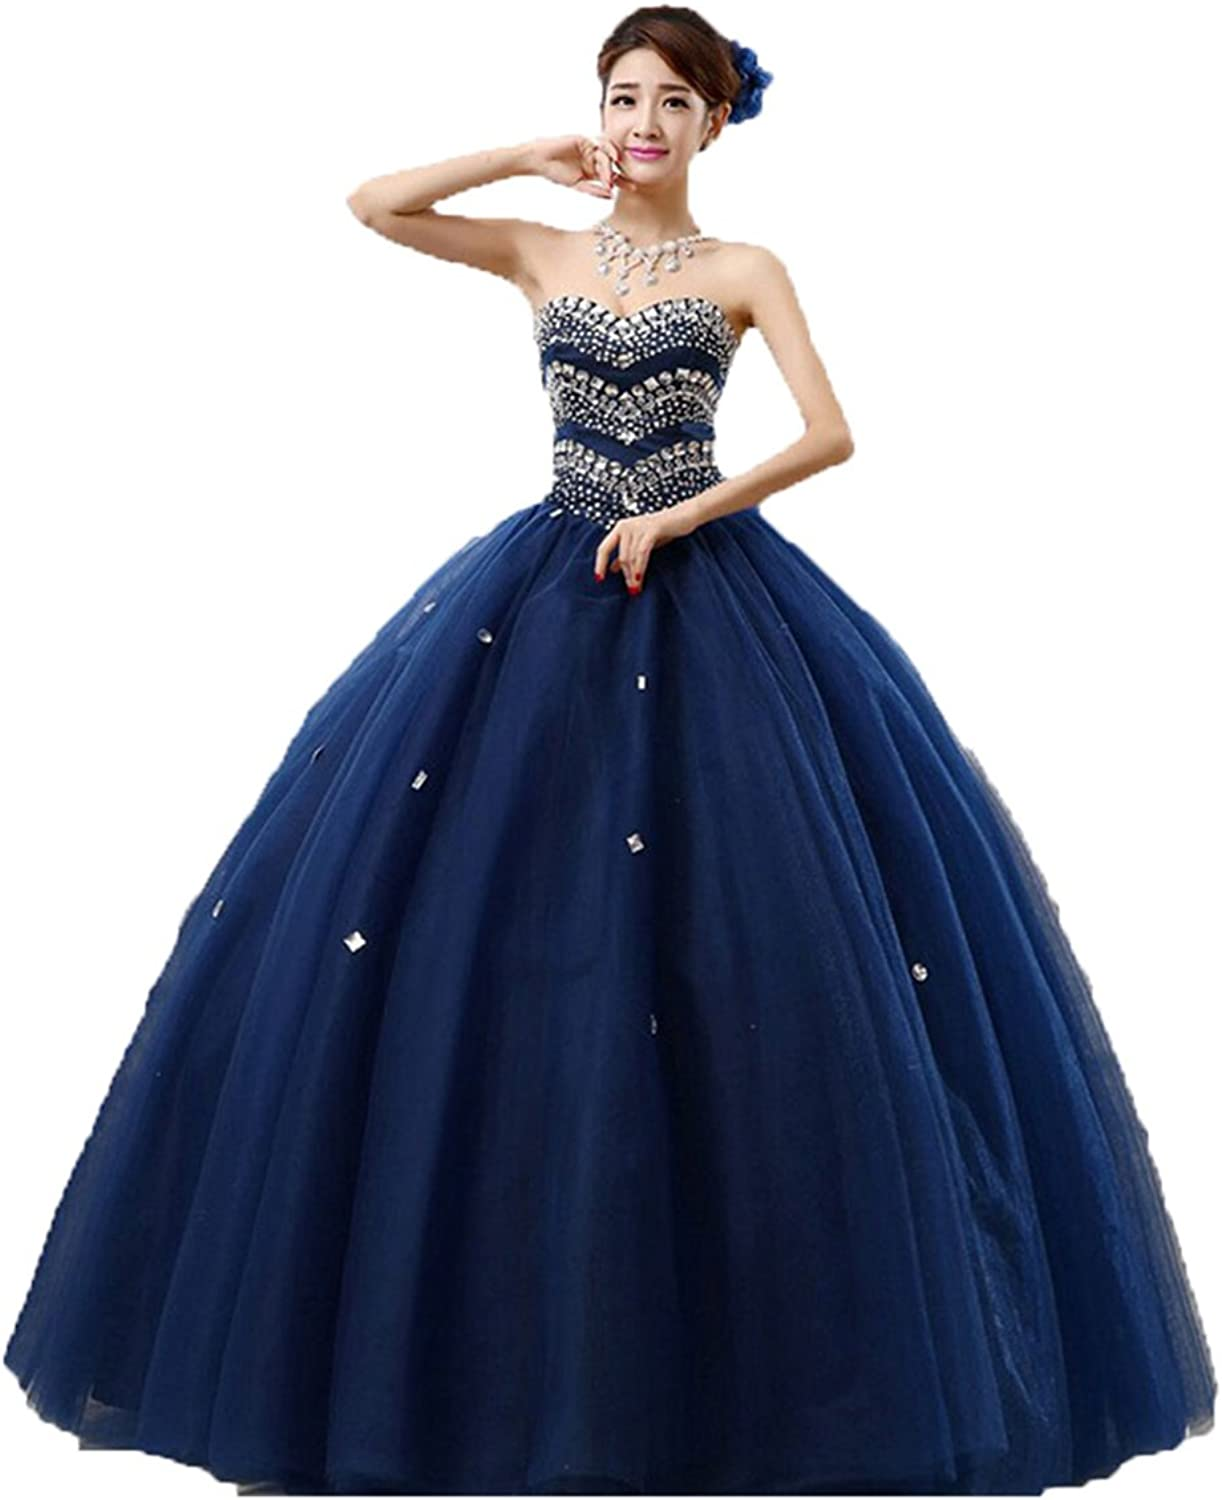 BEALEGAN Lady Women's Ball Gown Crystal Ball Gown Sweet 15 16 Quinceanera Prom Dress